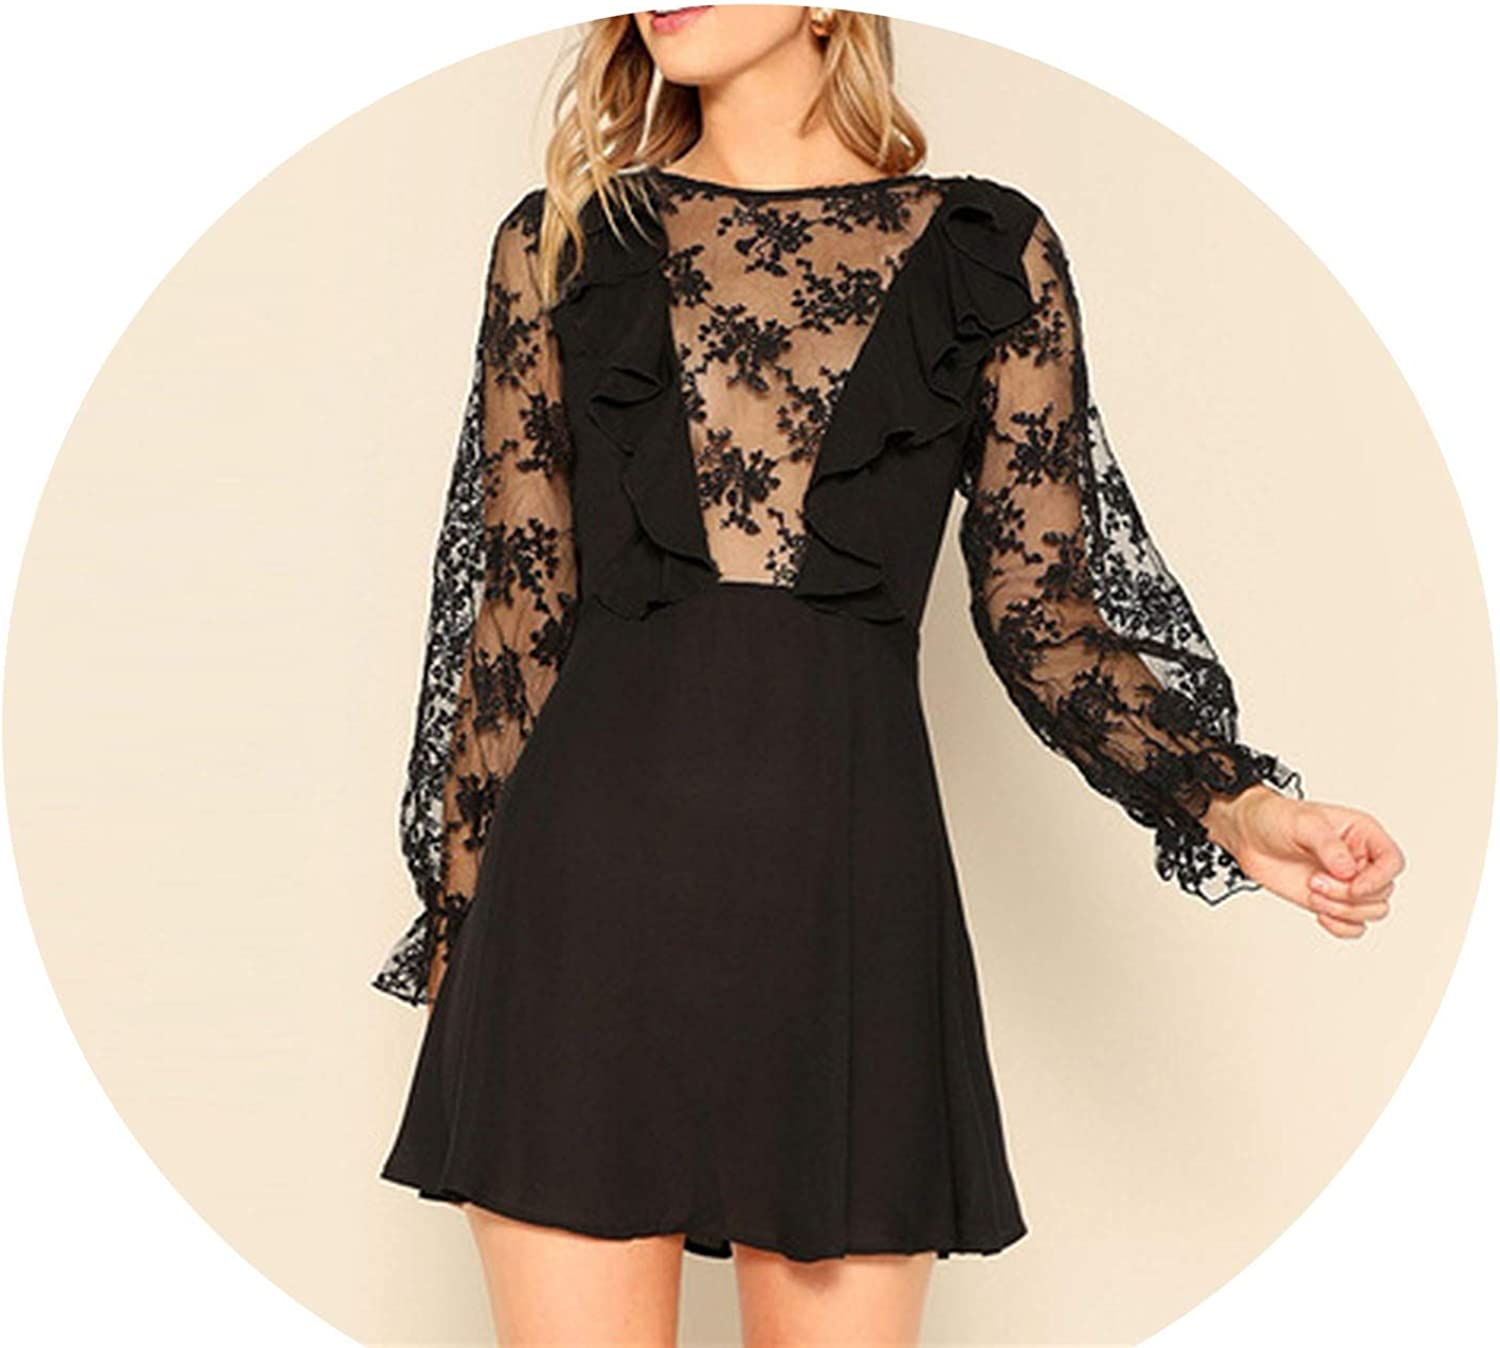 colorfulspace Lace Mesh Sleeve Sheer Women Dress 2019 Spring ONeck A Line Fit and Flare Mini Elegant Dresses